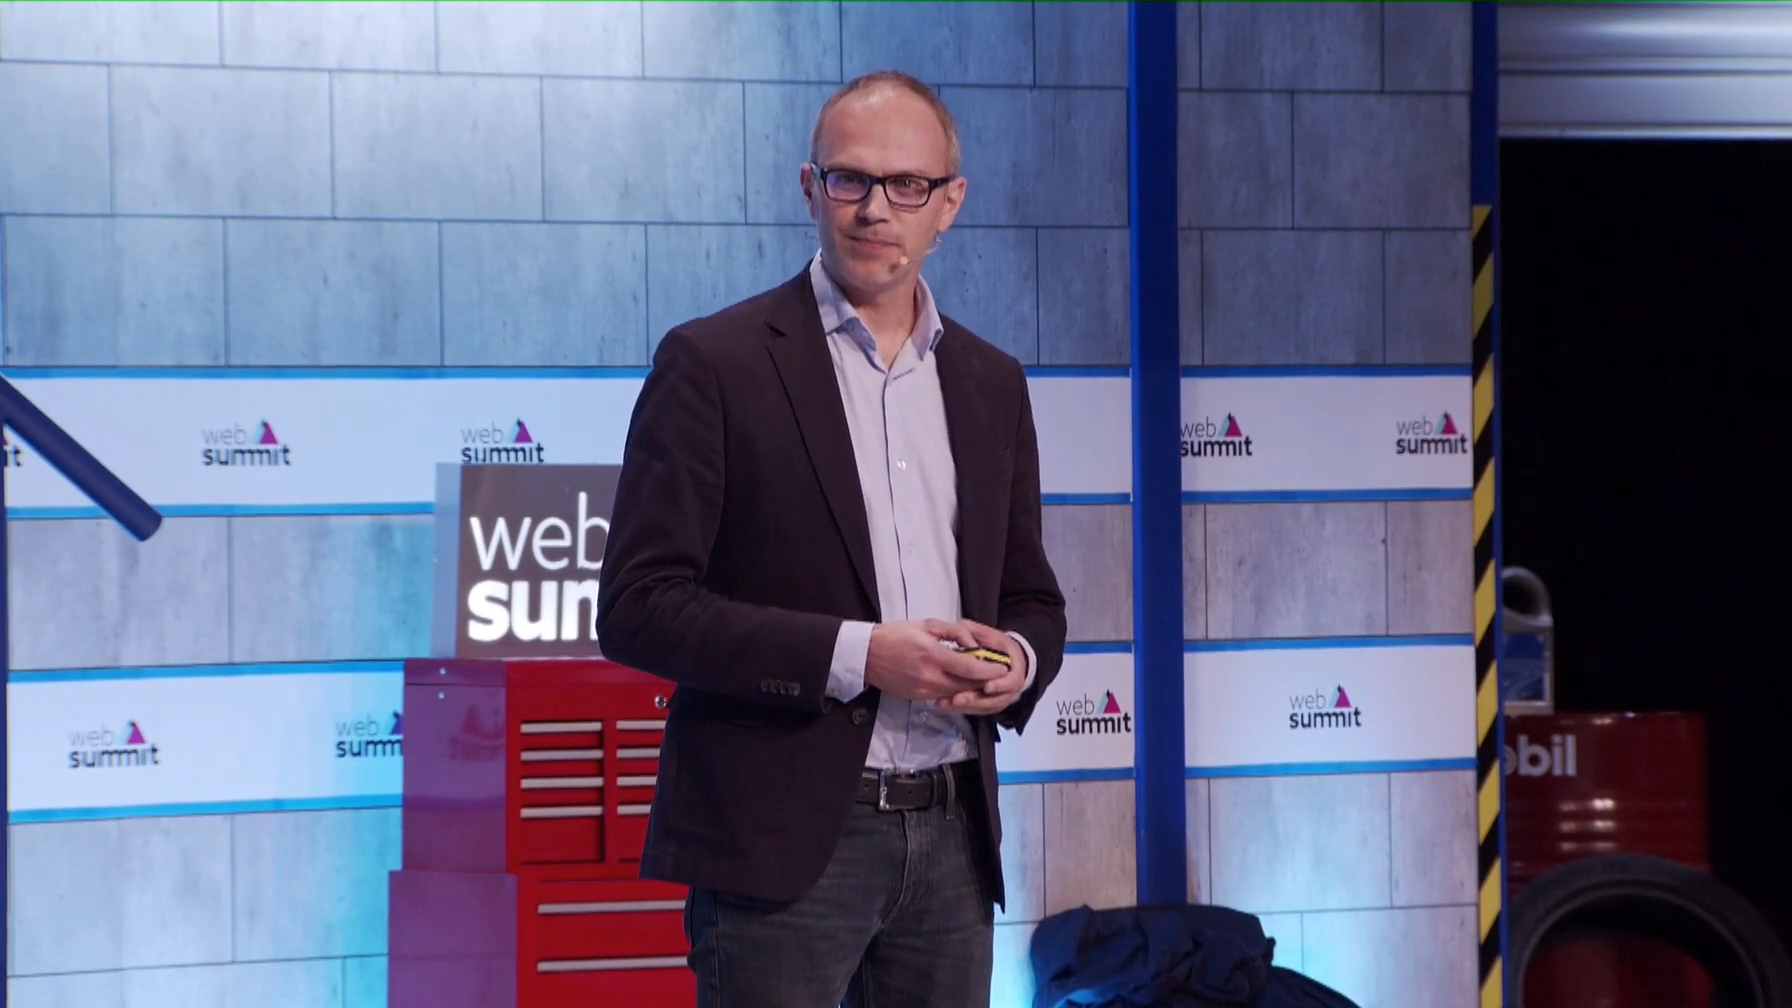 Live from Web Summit! A World Tour of How Shared & Electric Mobility Transforms the City